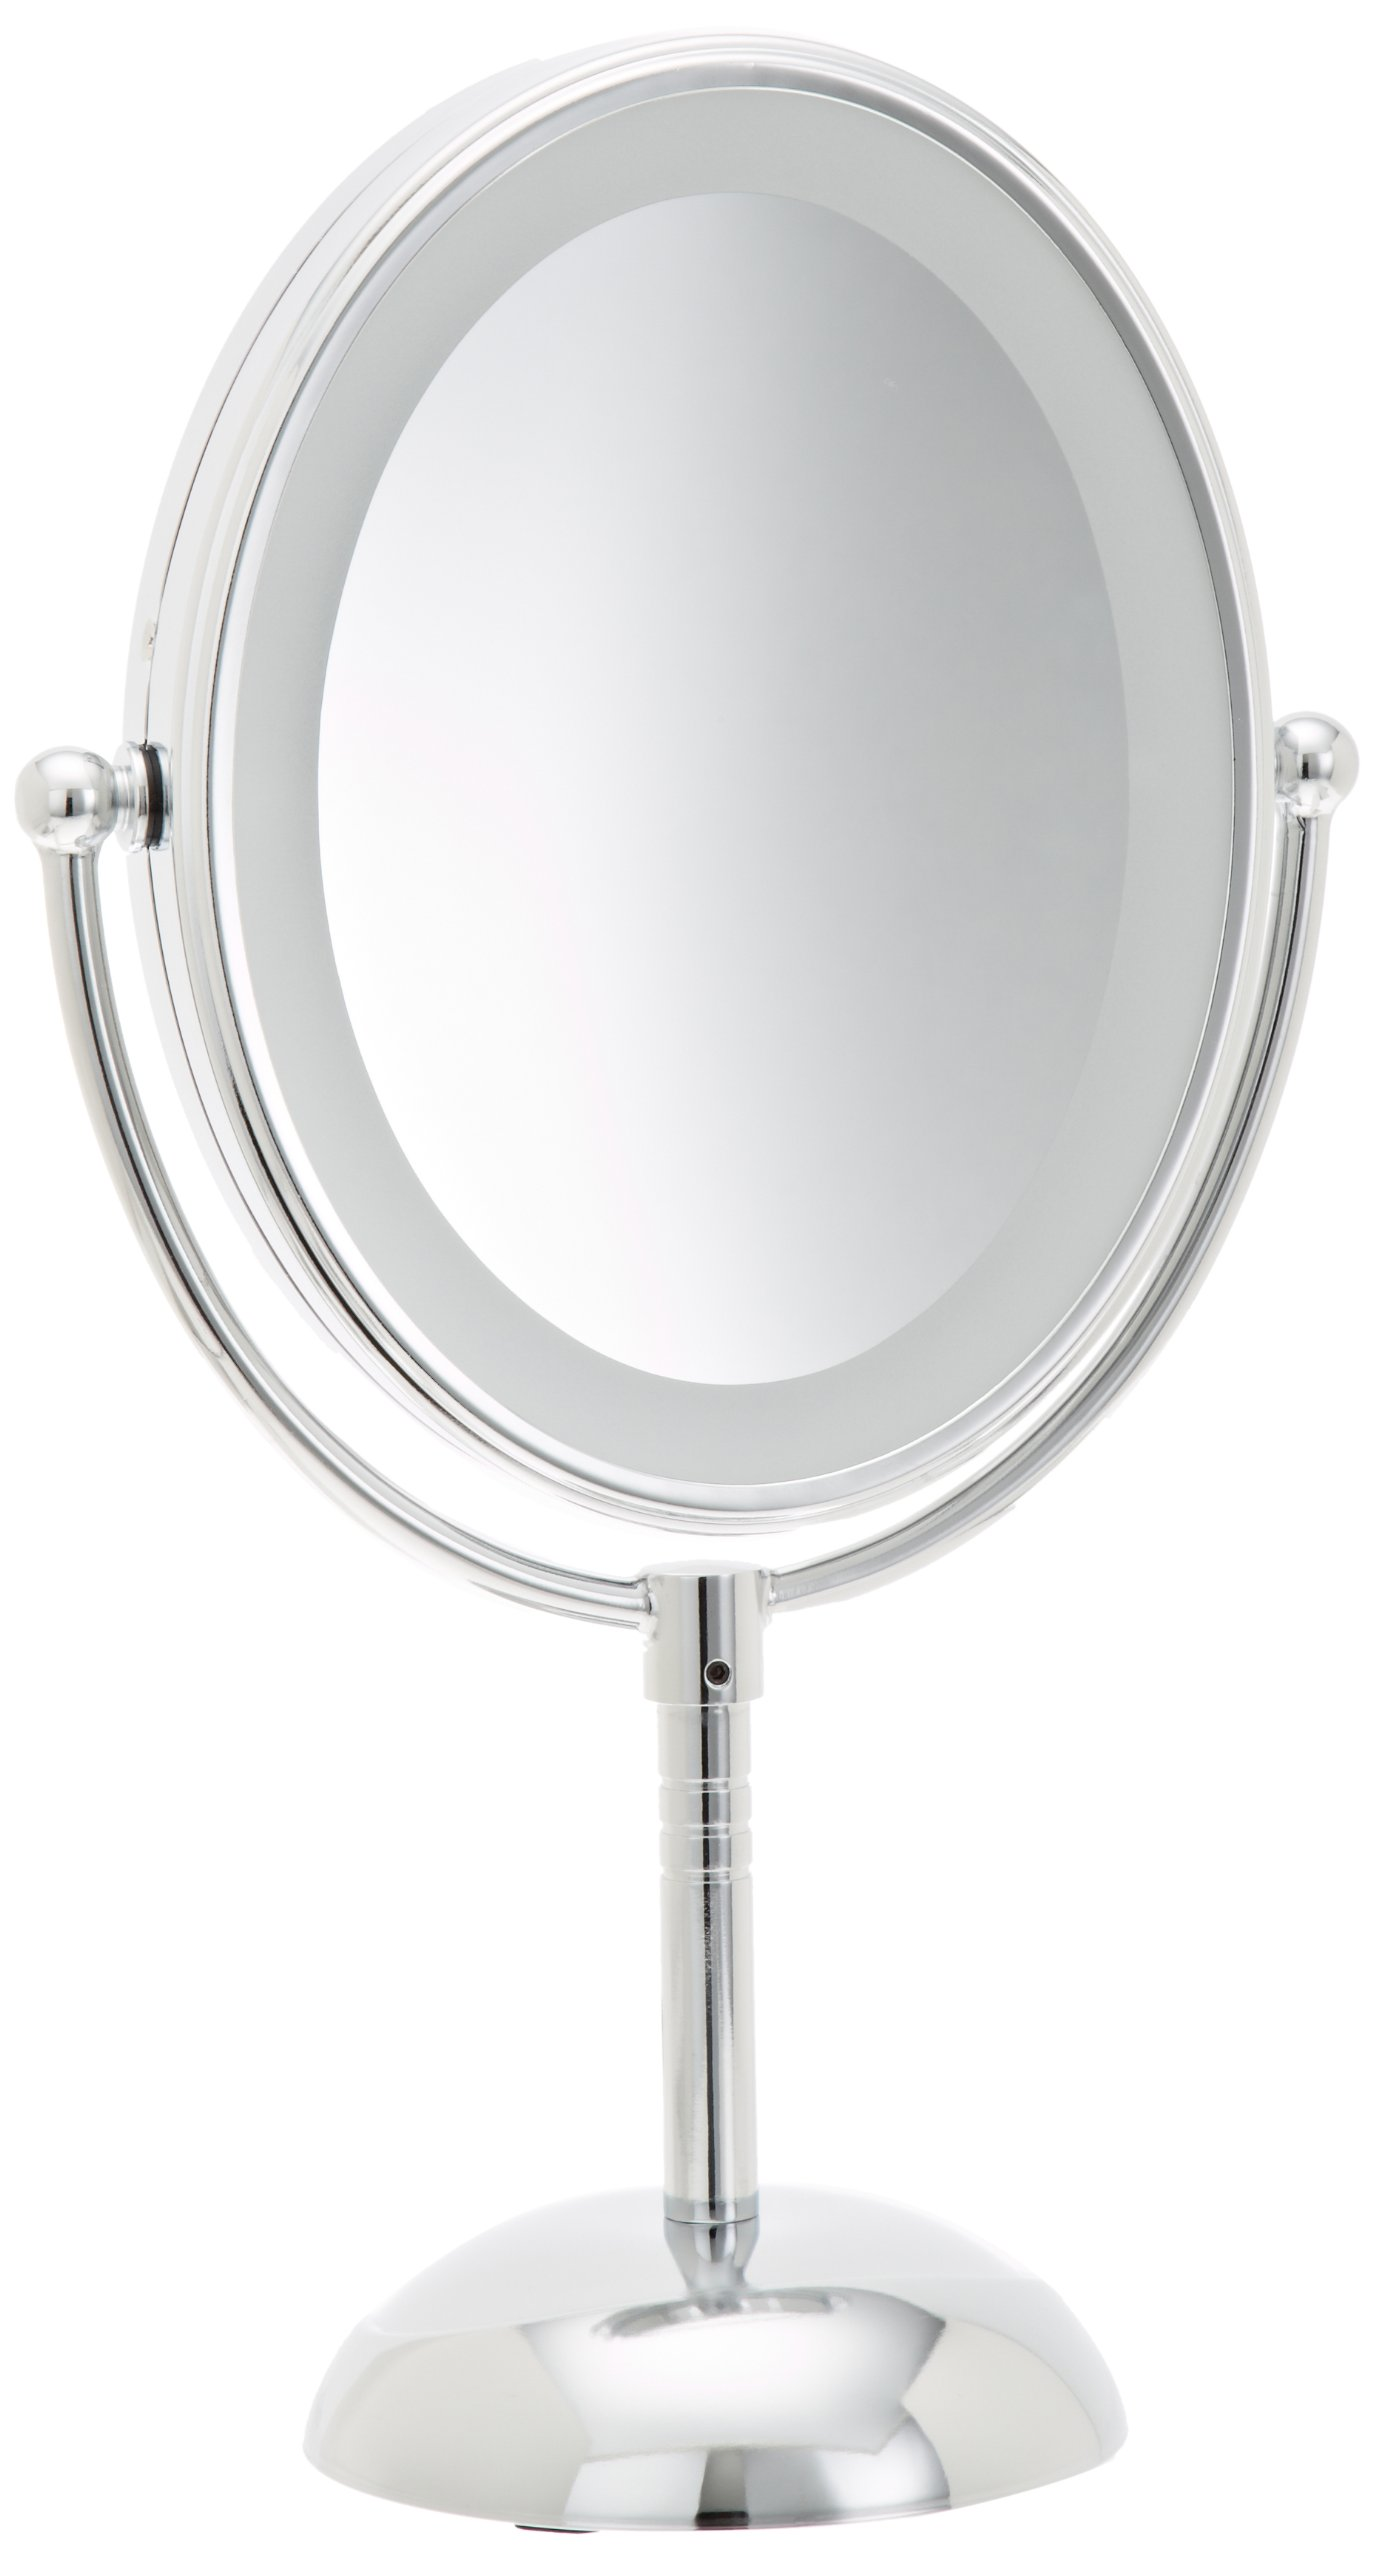 led makeup mirror reflections lighted battery 7x magnifying vanity. Black Bedroom Furniture Sets. Home Design Ideas